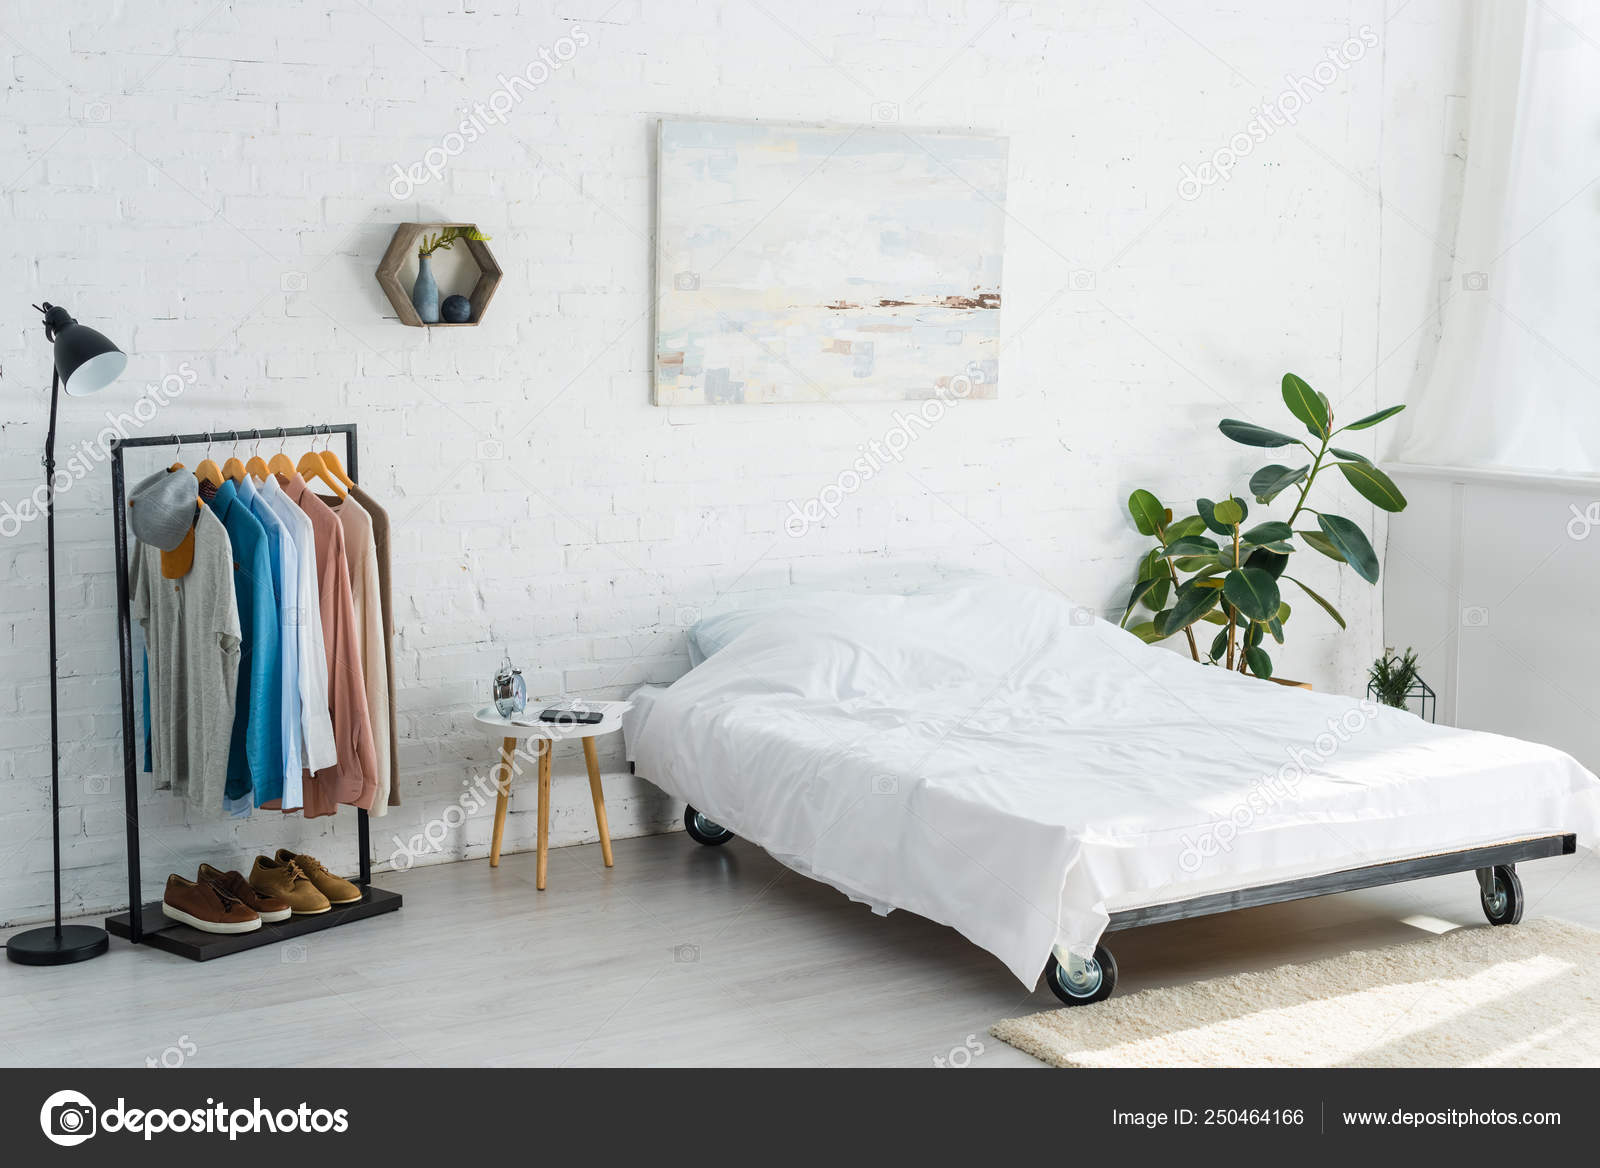 Bed Clothes Rack Shirts Plant Floor Lamp Coffee Table ...